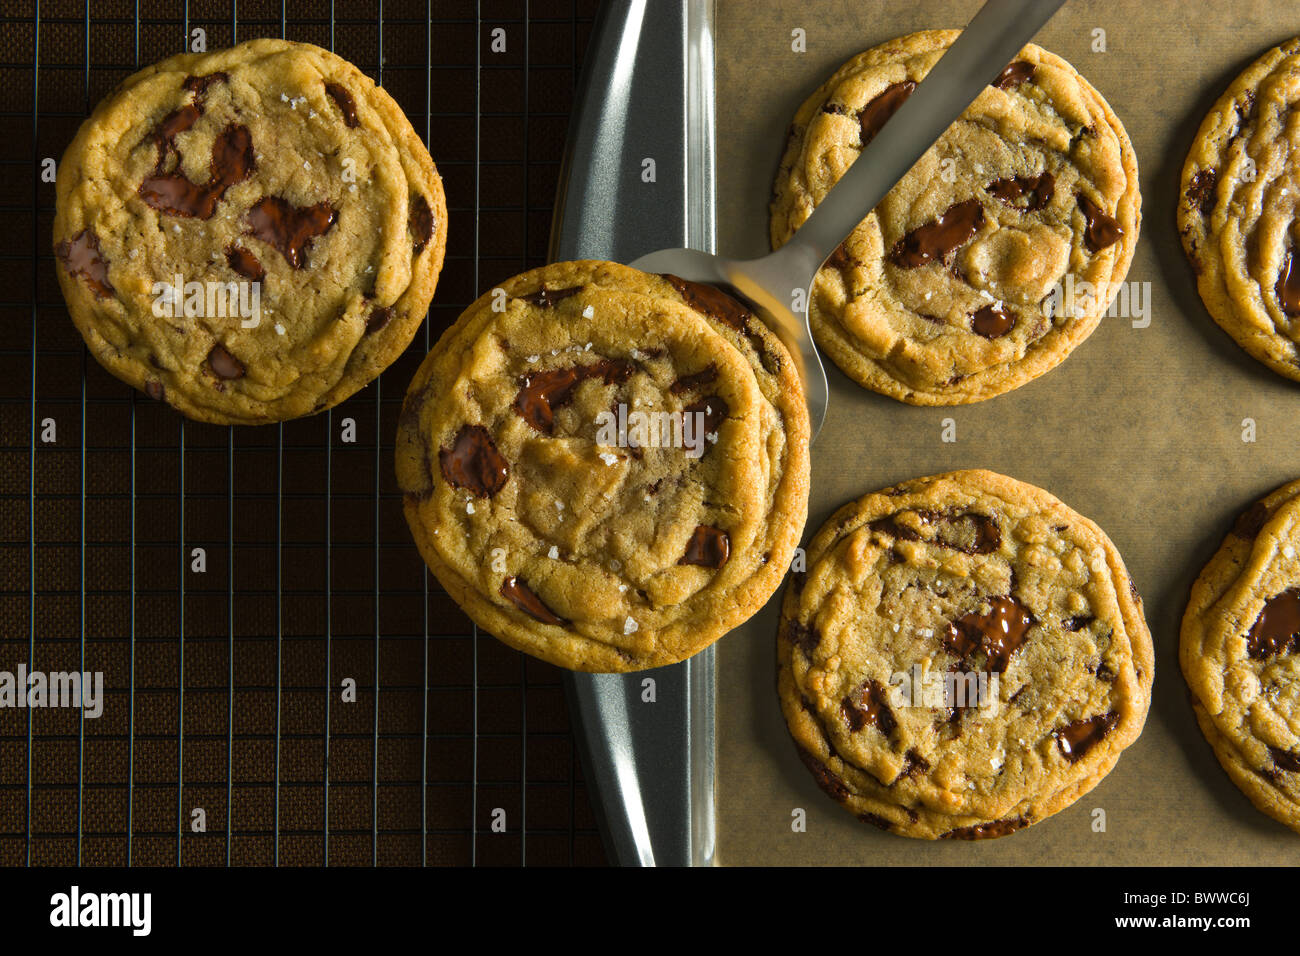 A Spatula removing a Chocolate Chip Cookies from a baking sheet over a brown linen table cloth and a wire cooling rack. Stock Photo